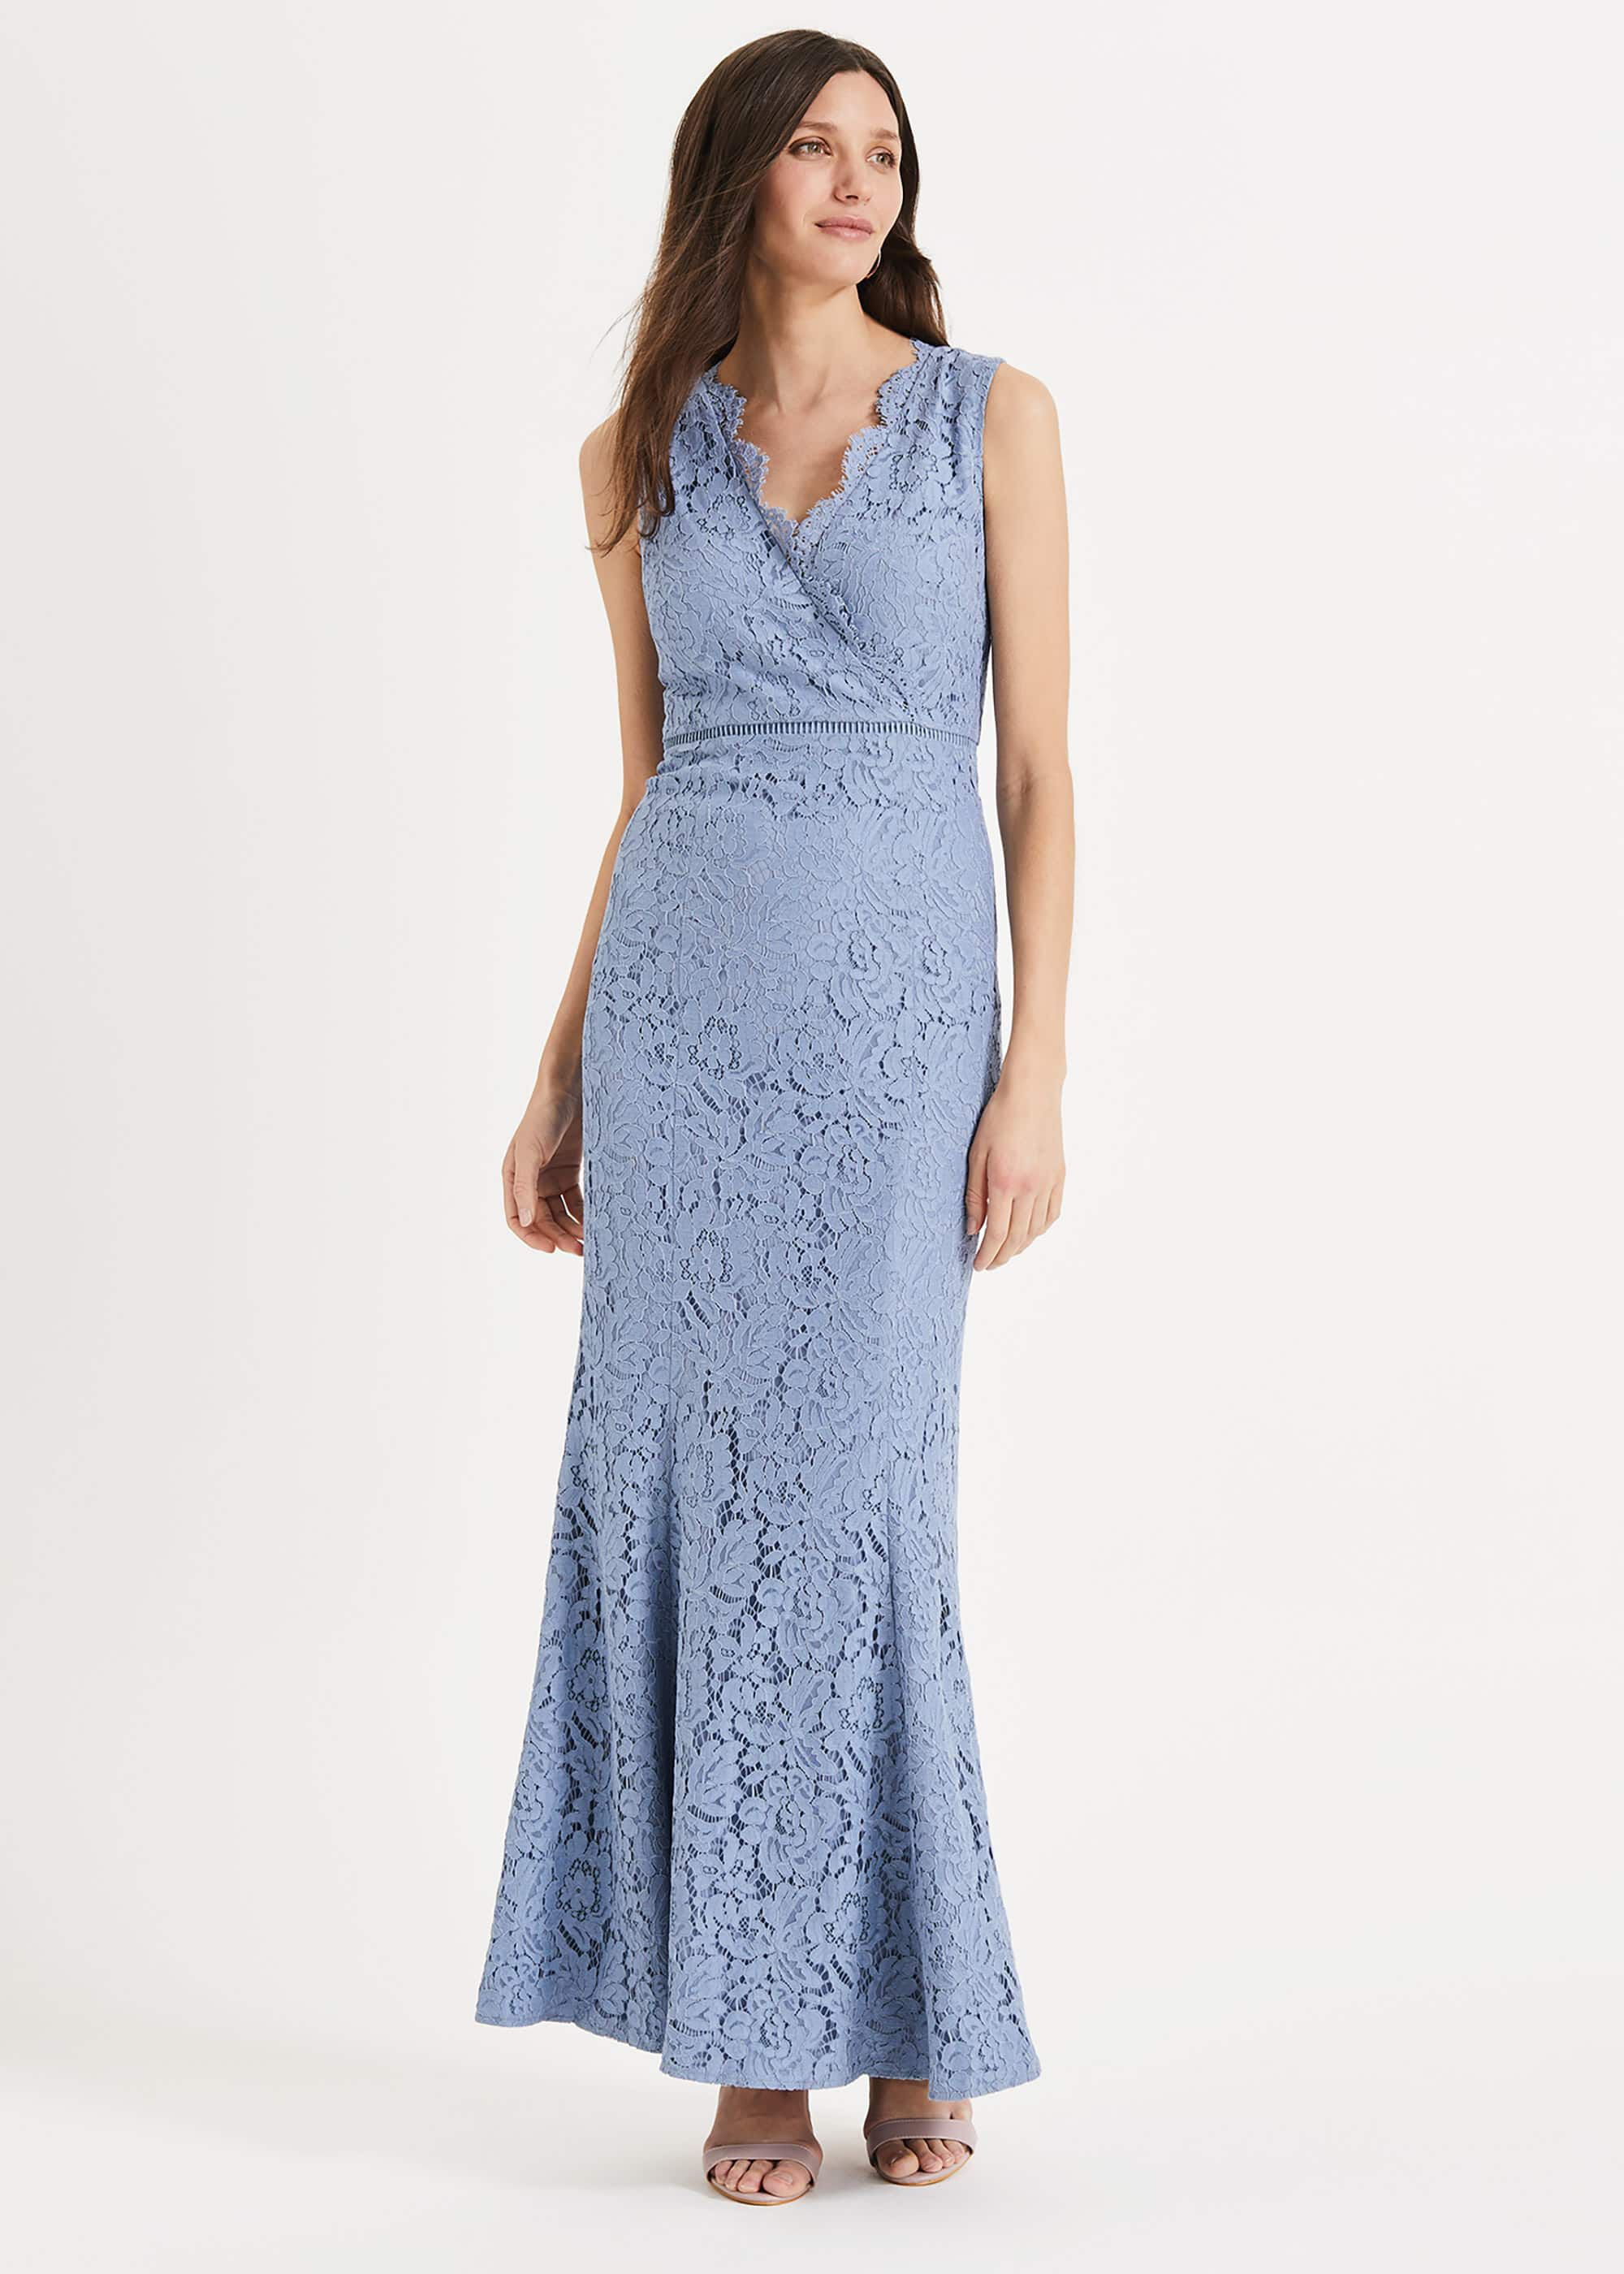 Phase Eight Paola Lace Fishtail Dress, Blue, Maxi, Occasion Dress